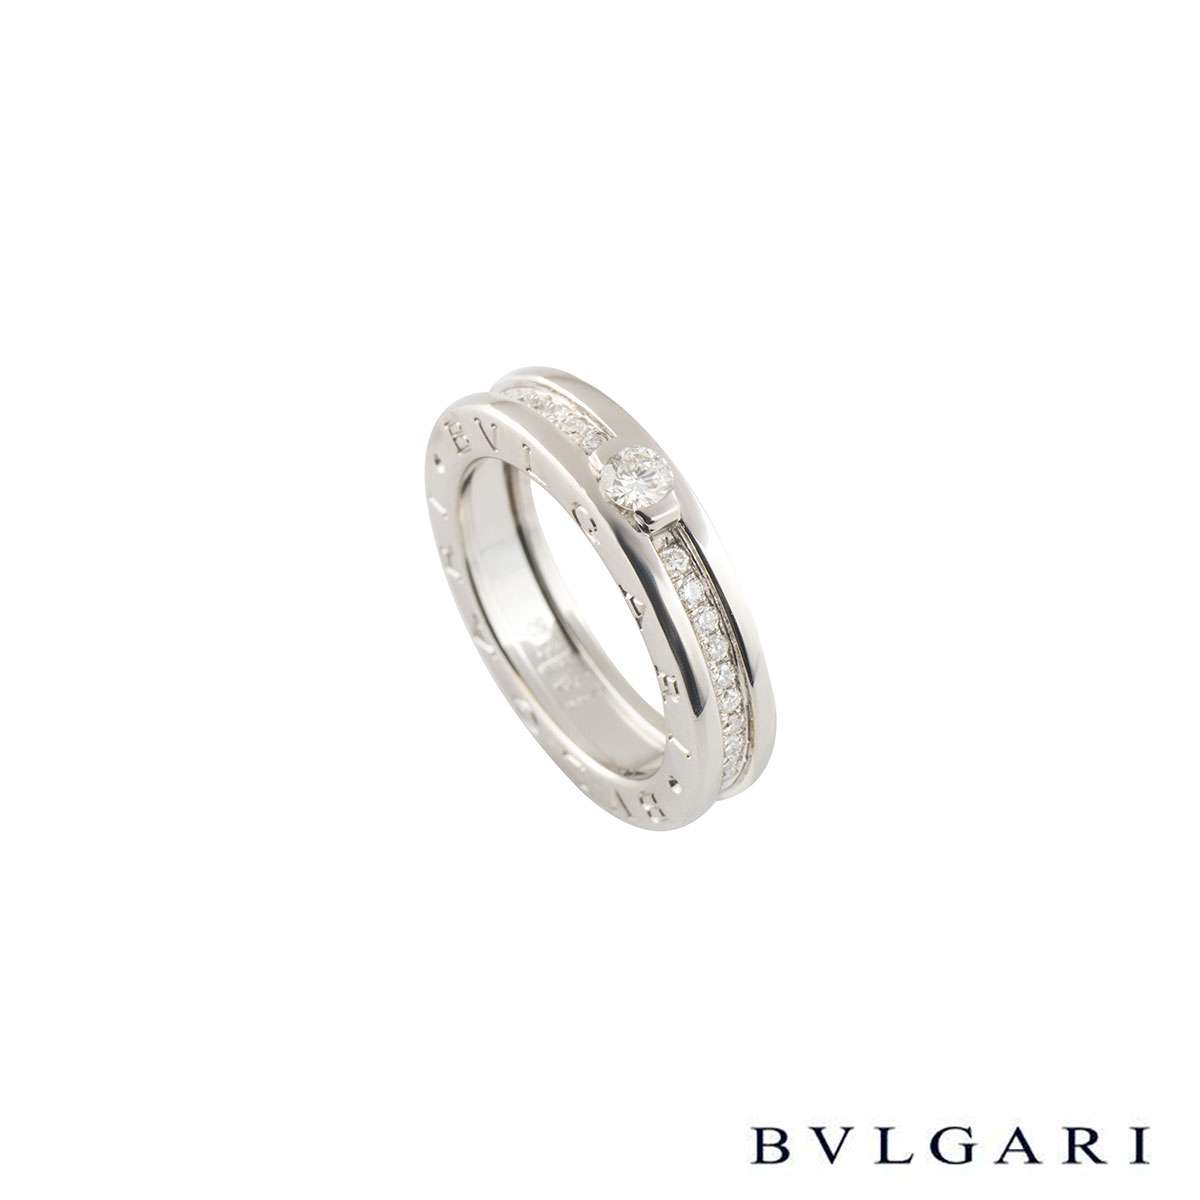 Bvlgari White Gold Diamond B.Zero1 Ring Size 50 AN852397